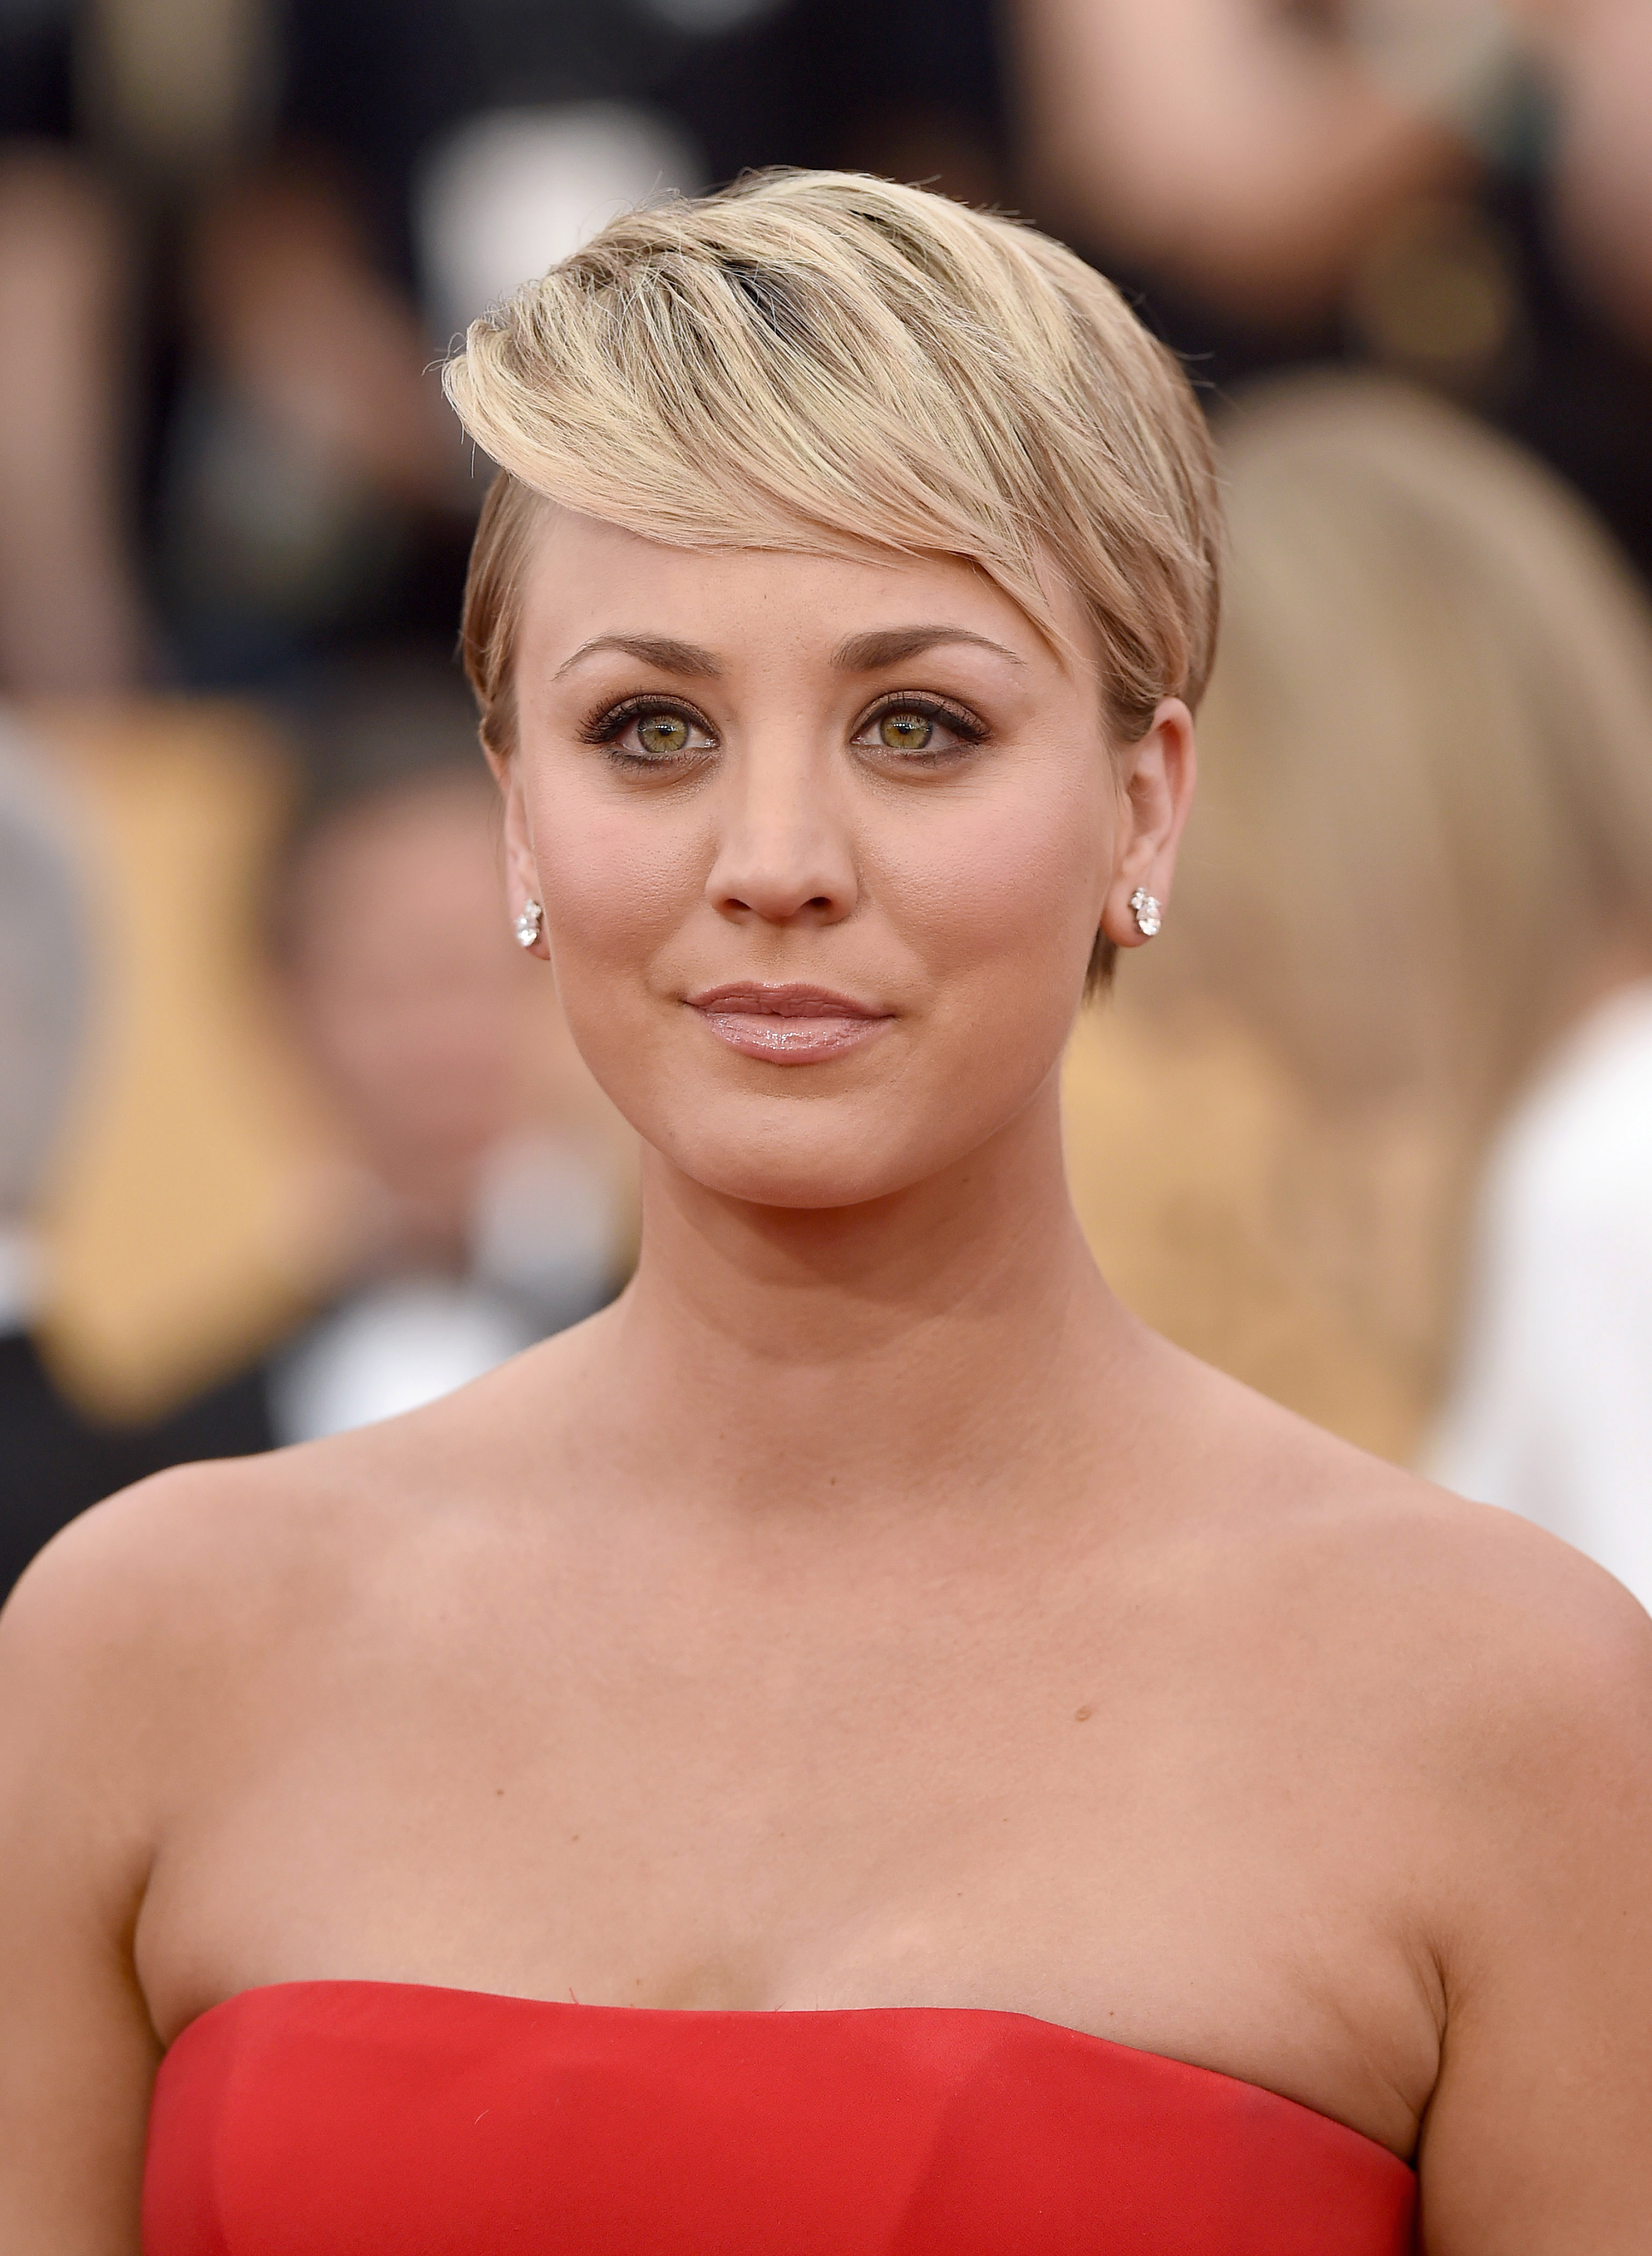 Miraculous 34 Pixie Hairstyles And Cuts Celebrities With Pixies Short Hairstyles Gunalazisus